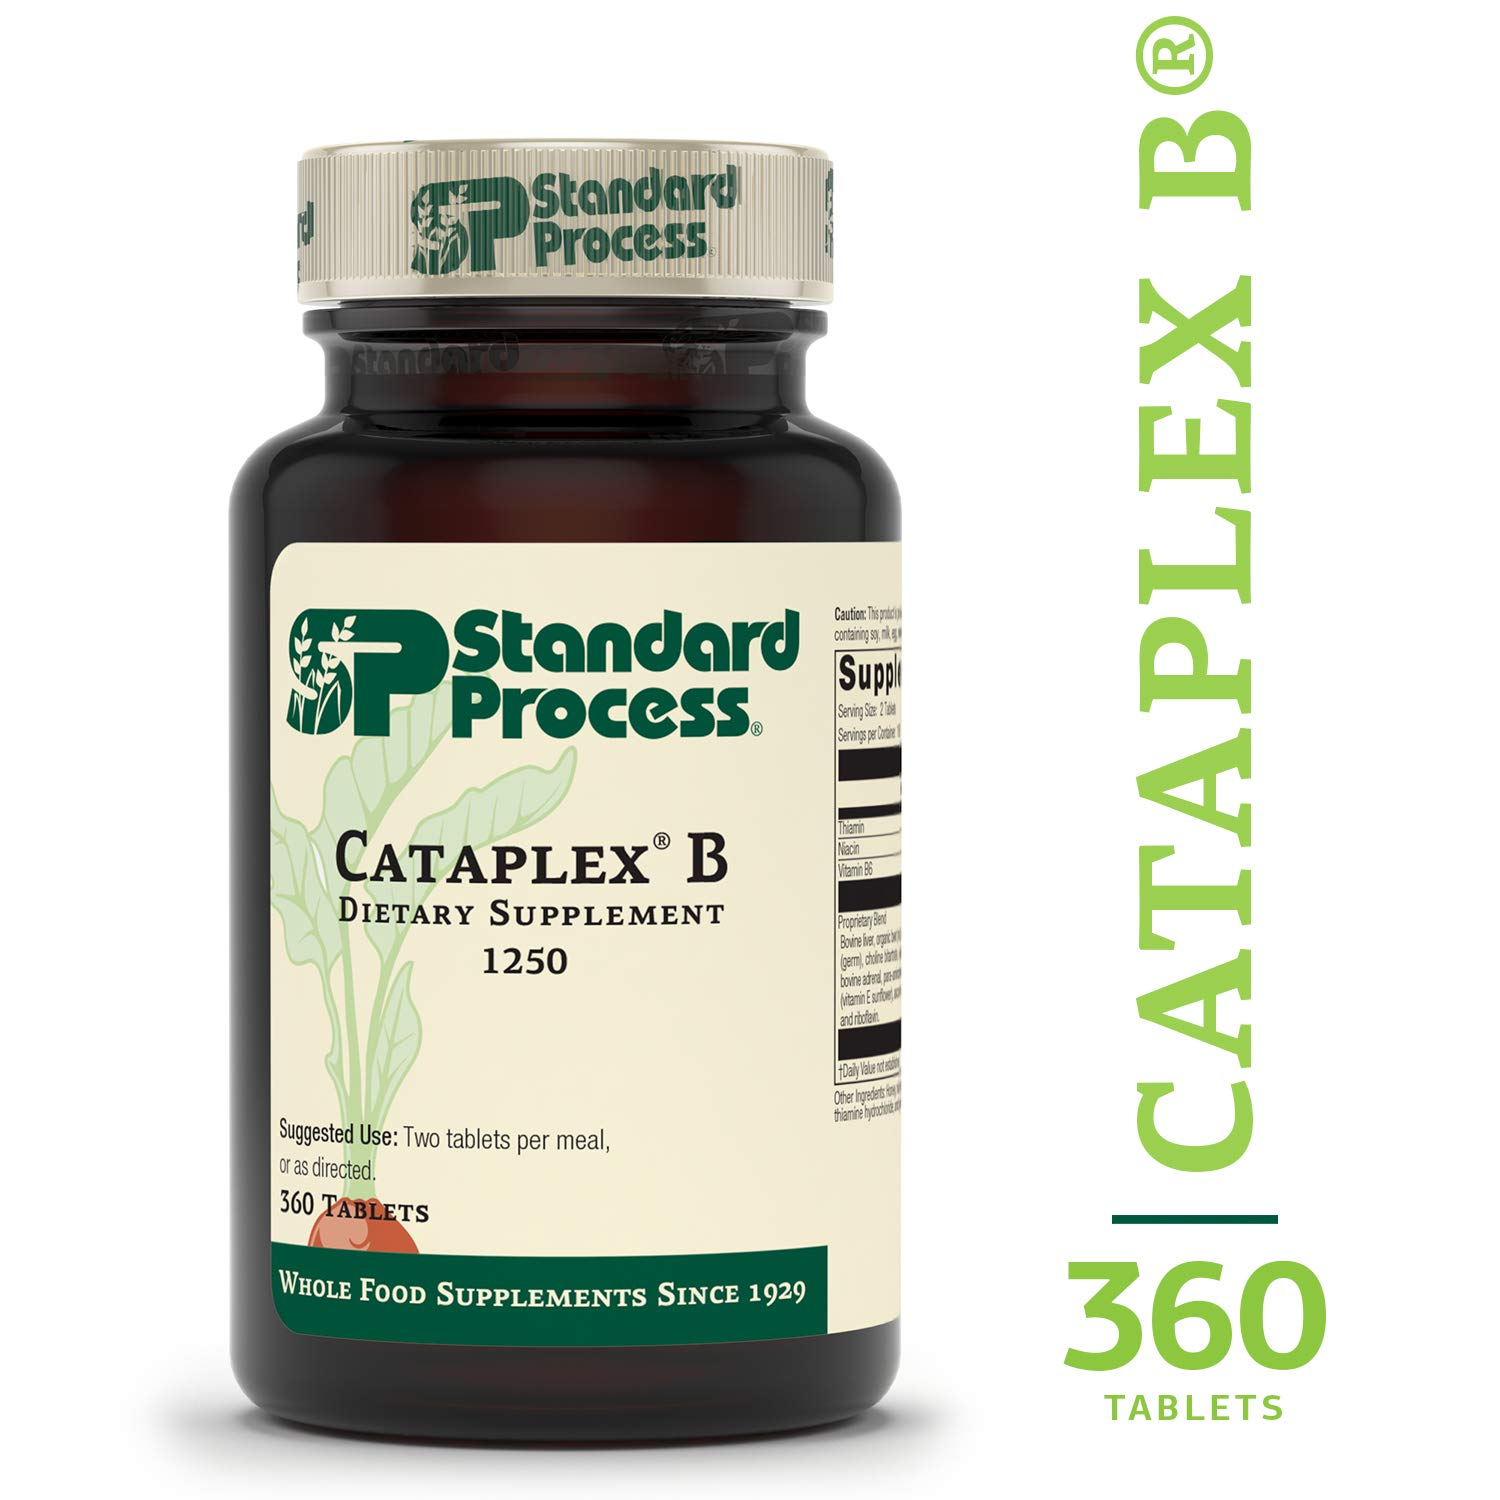 Standard Process - Cataplex B - 20 mg Niacin, Thiamin, Vitamin B6, B-Vitamin Supplement, Supports Metabolic, Cardiovascular, Healthy Cholesterol Levels, and Nervous System - 360 Tablets